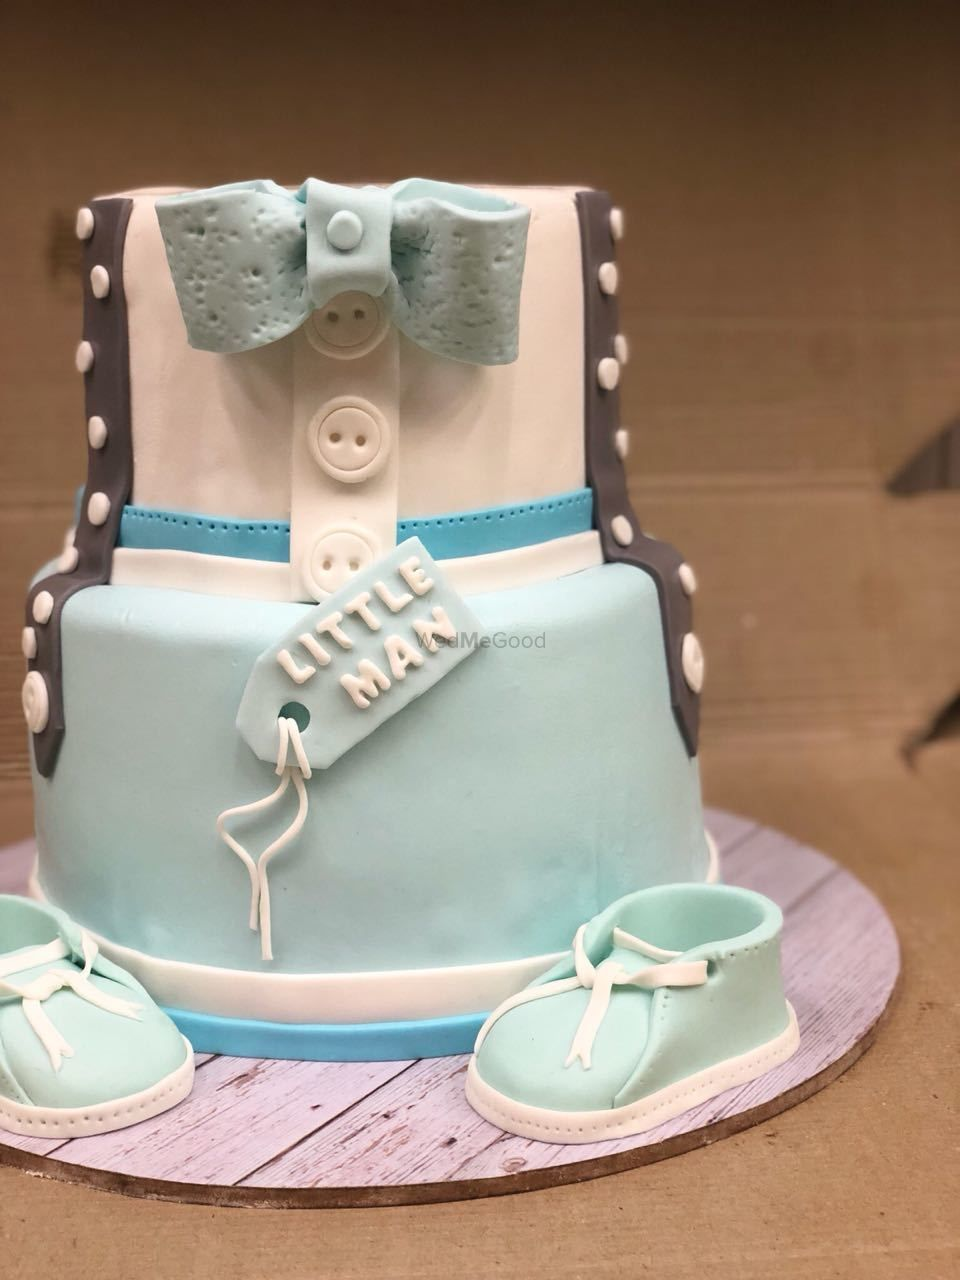 Photo From BABY CAKES BY TCC - By The Cake Company